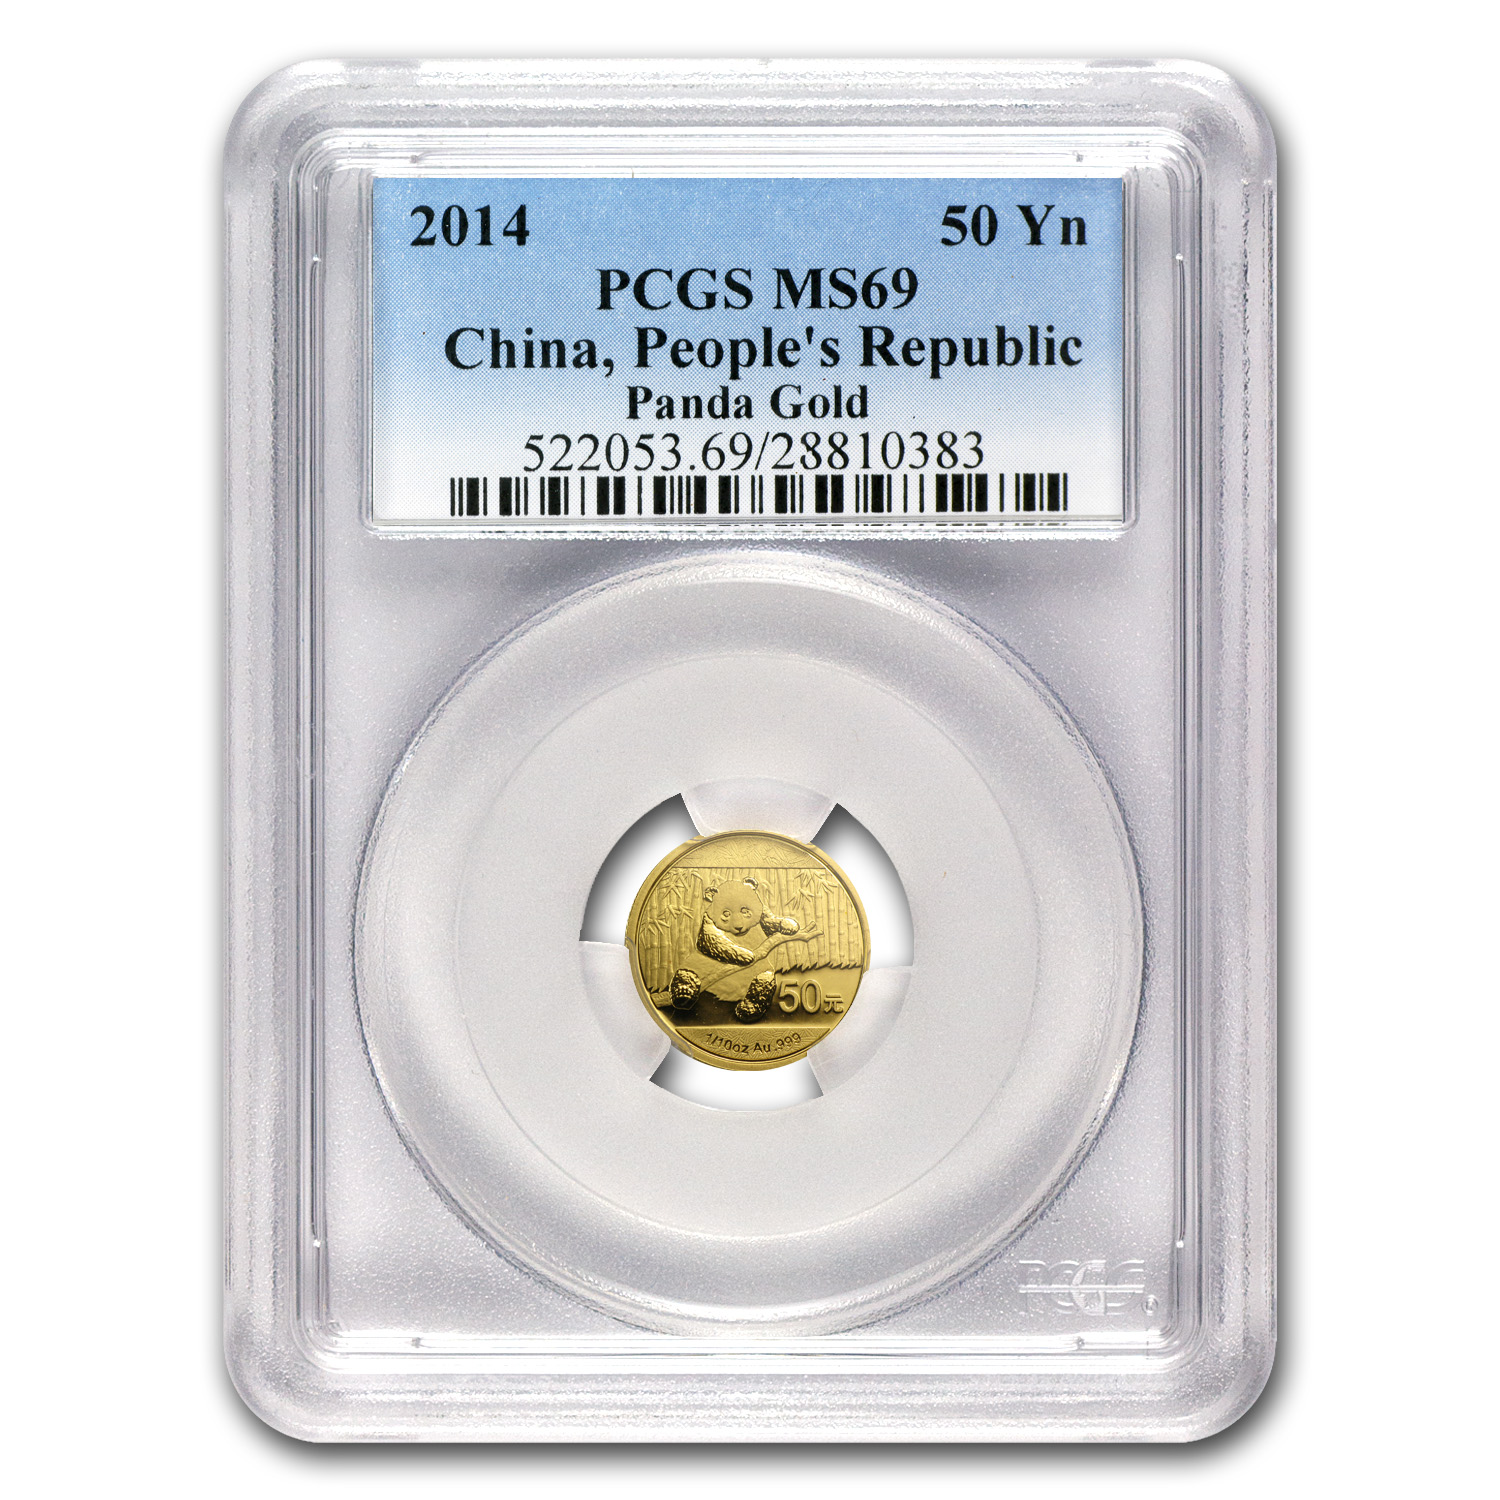 2014 (1/10 oz) Gold Chinese Panda - MS-69 PCGS